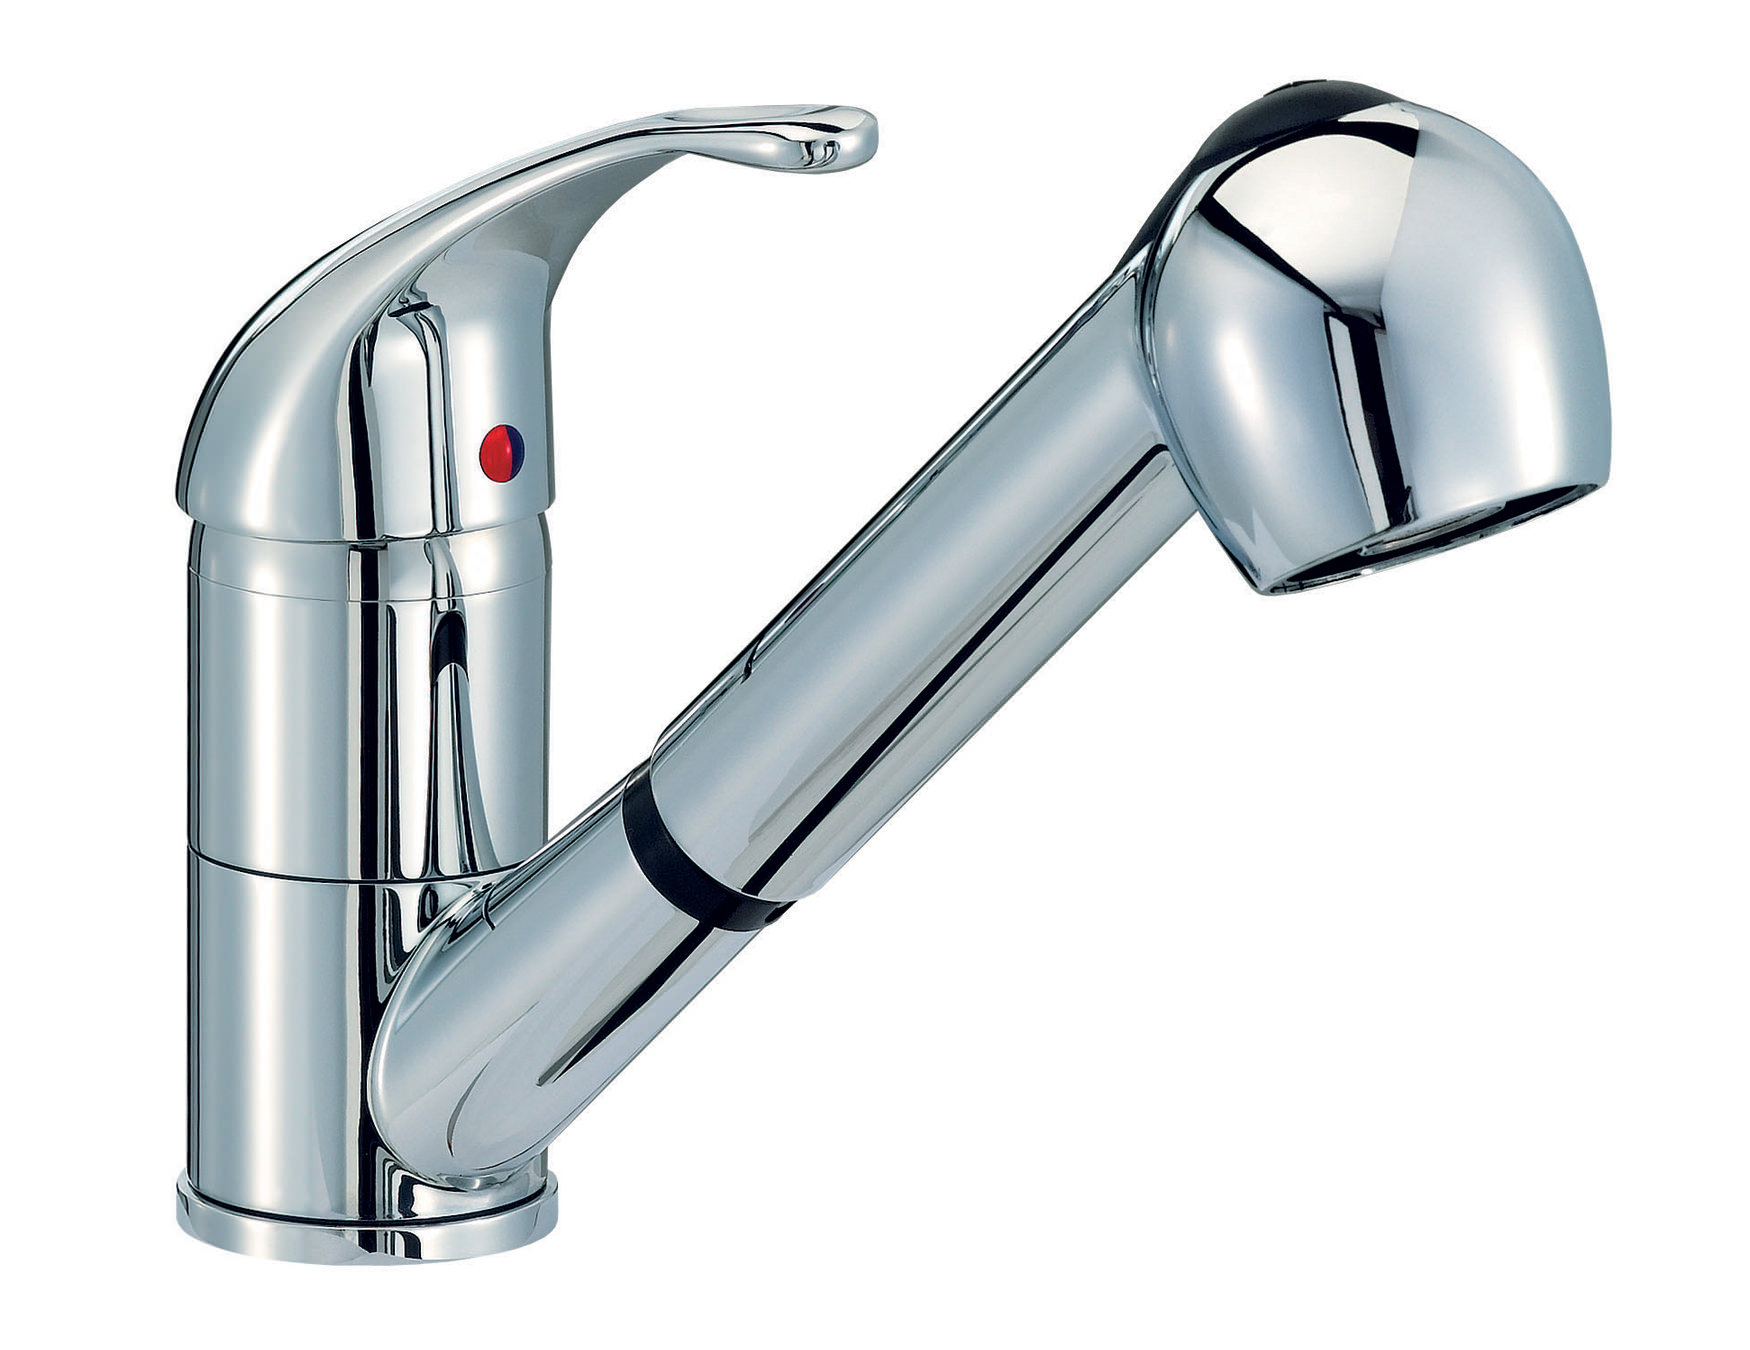 Mayfair Titan Monobloc Kitchen Tap With Pull Out Riser - KIT007